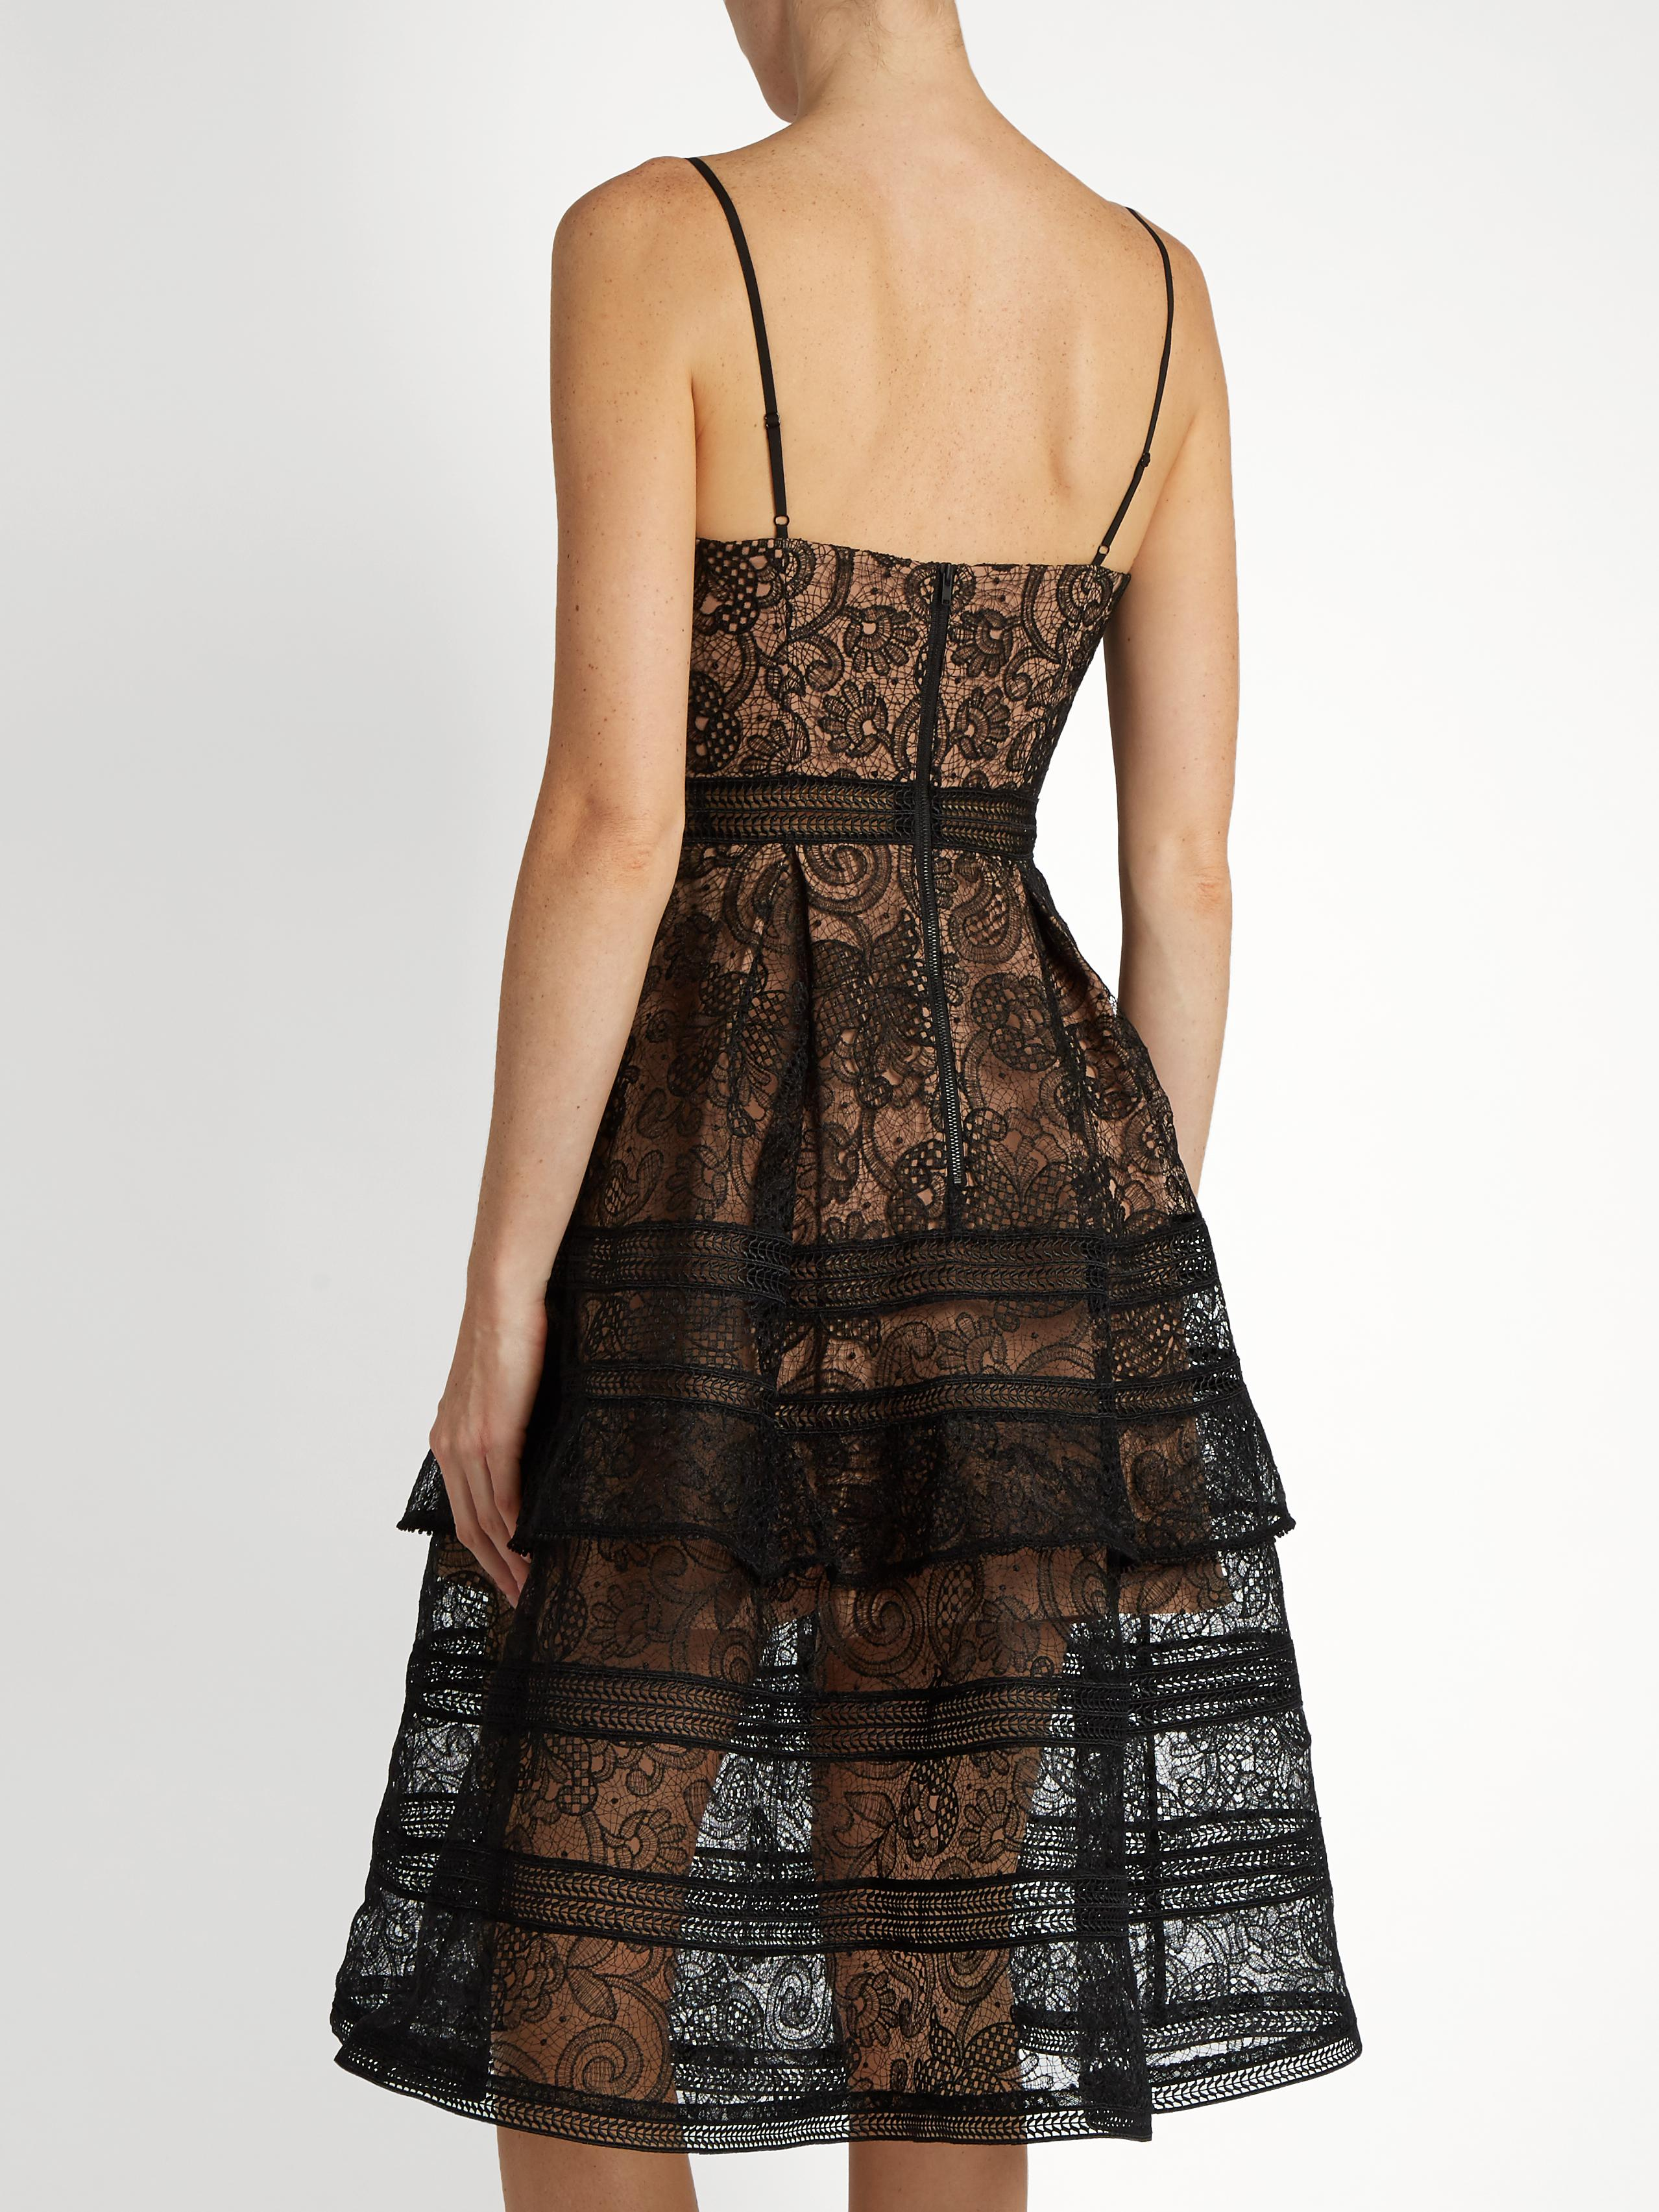 Self-Portrait Tiered Paneled Guipure Lace Dress In Black -9839